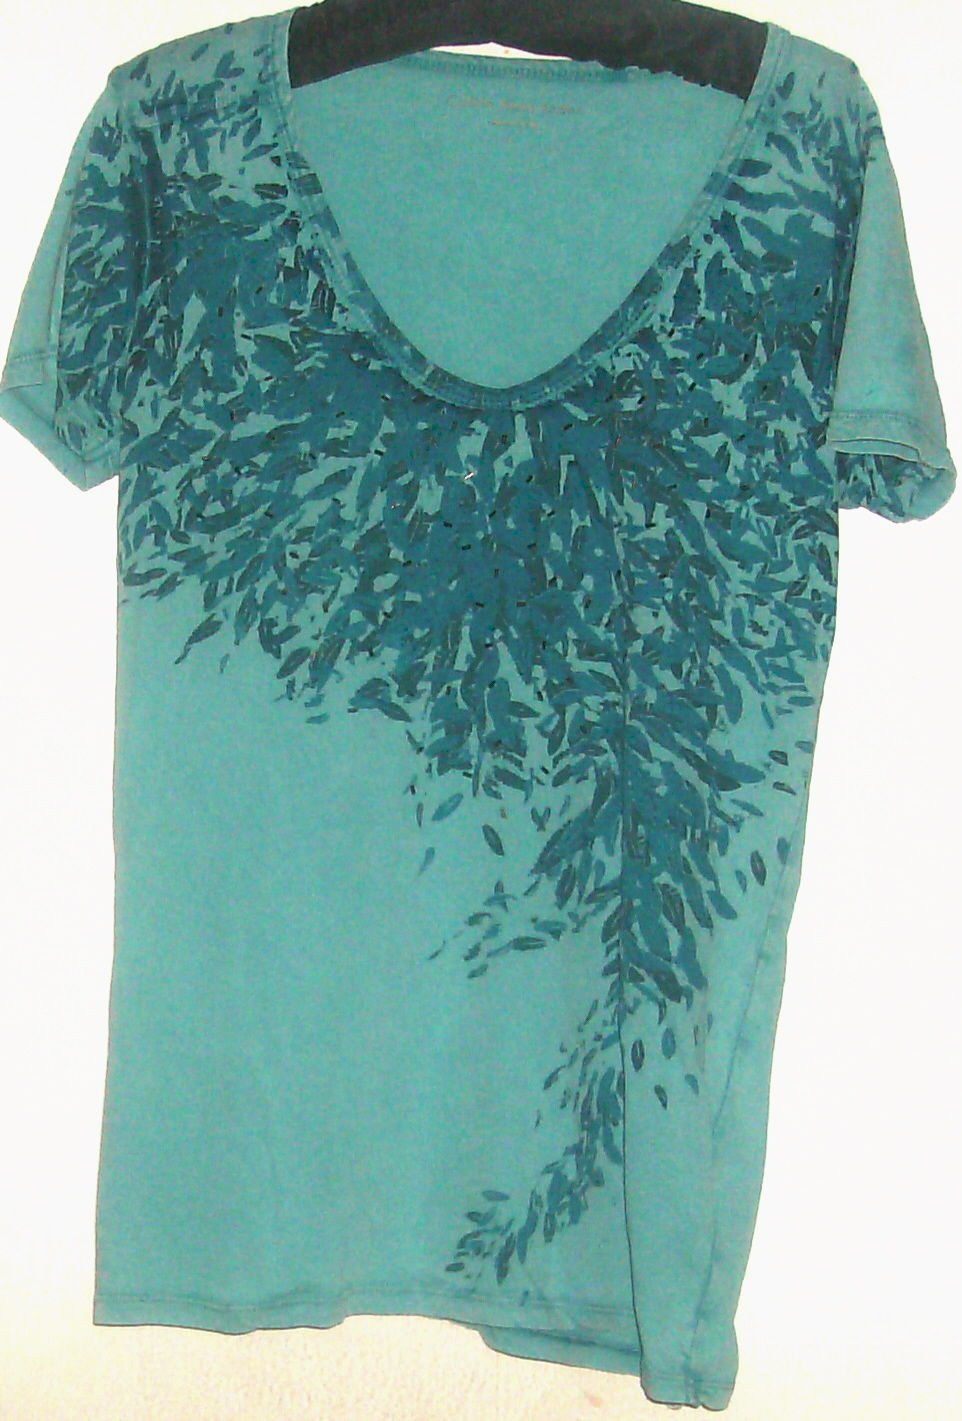 Primary image for WOMEN'S BLUE PRINTED  TOP SIZE S